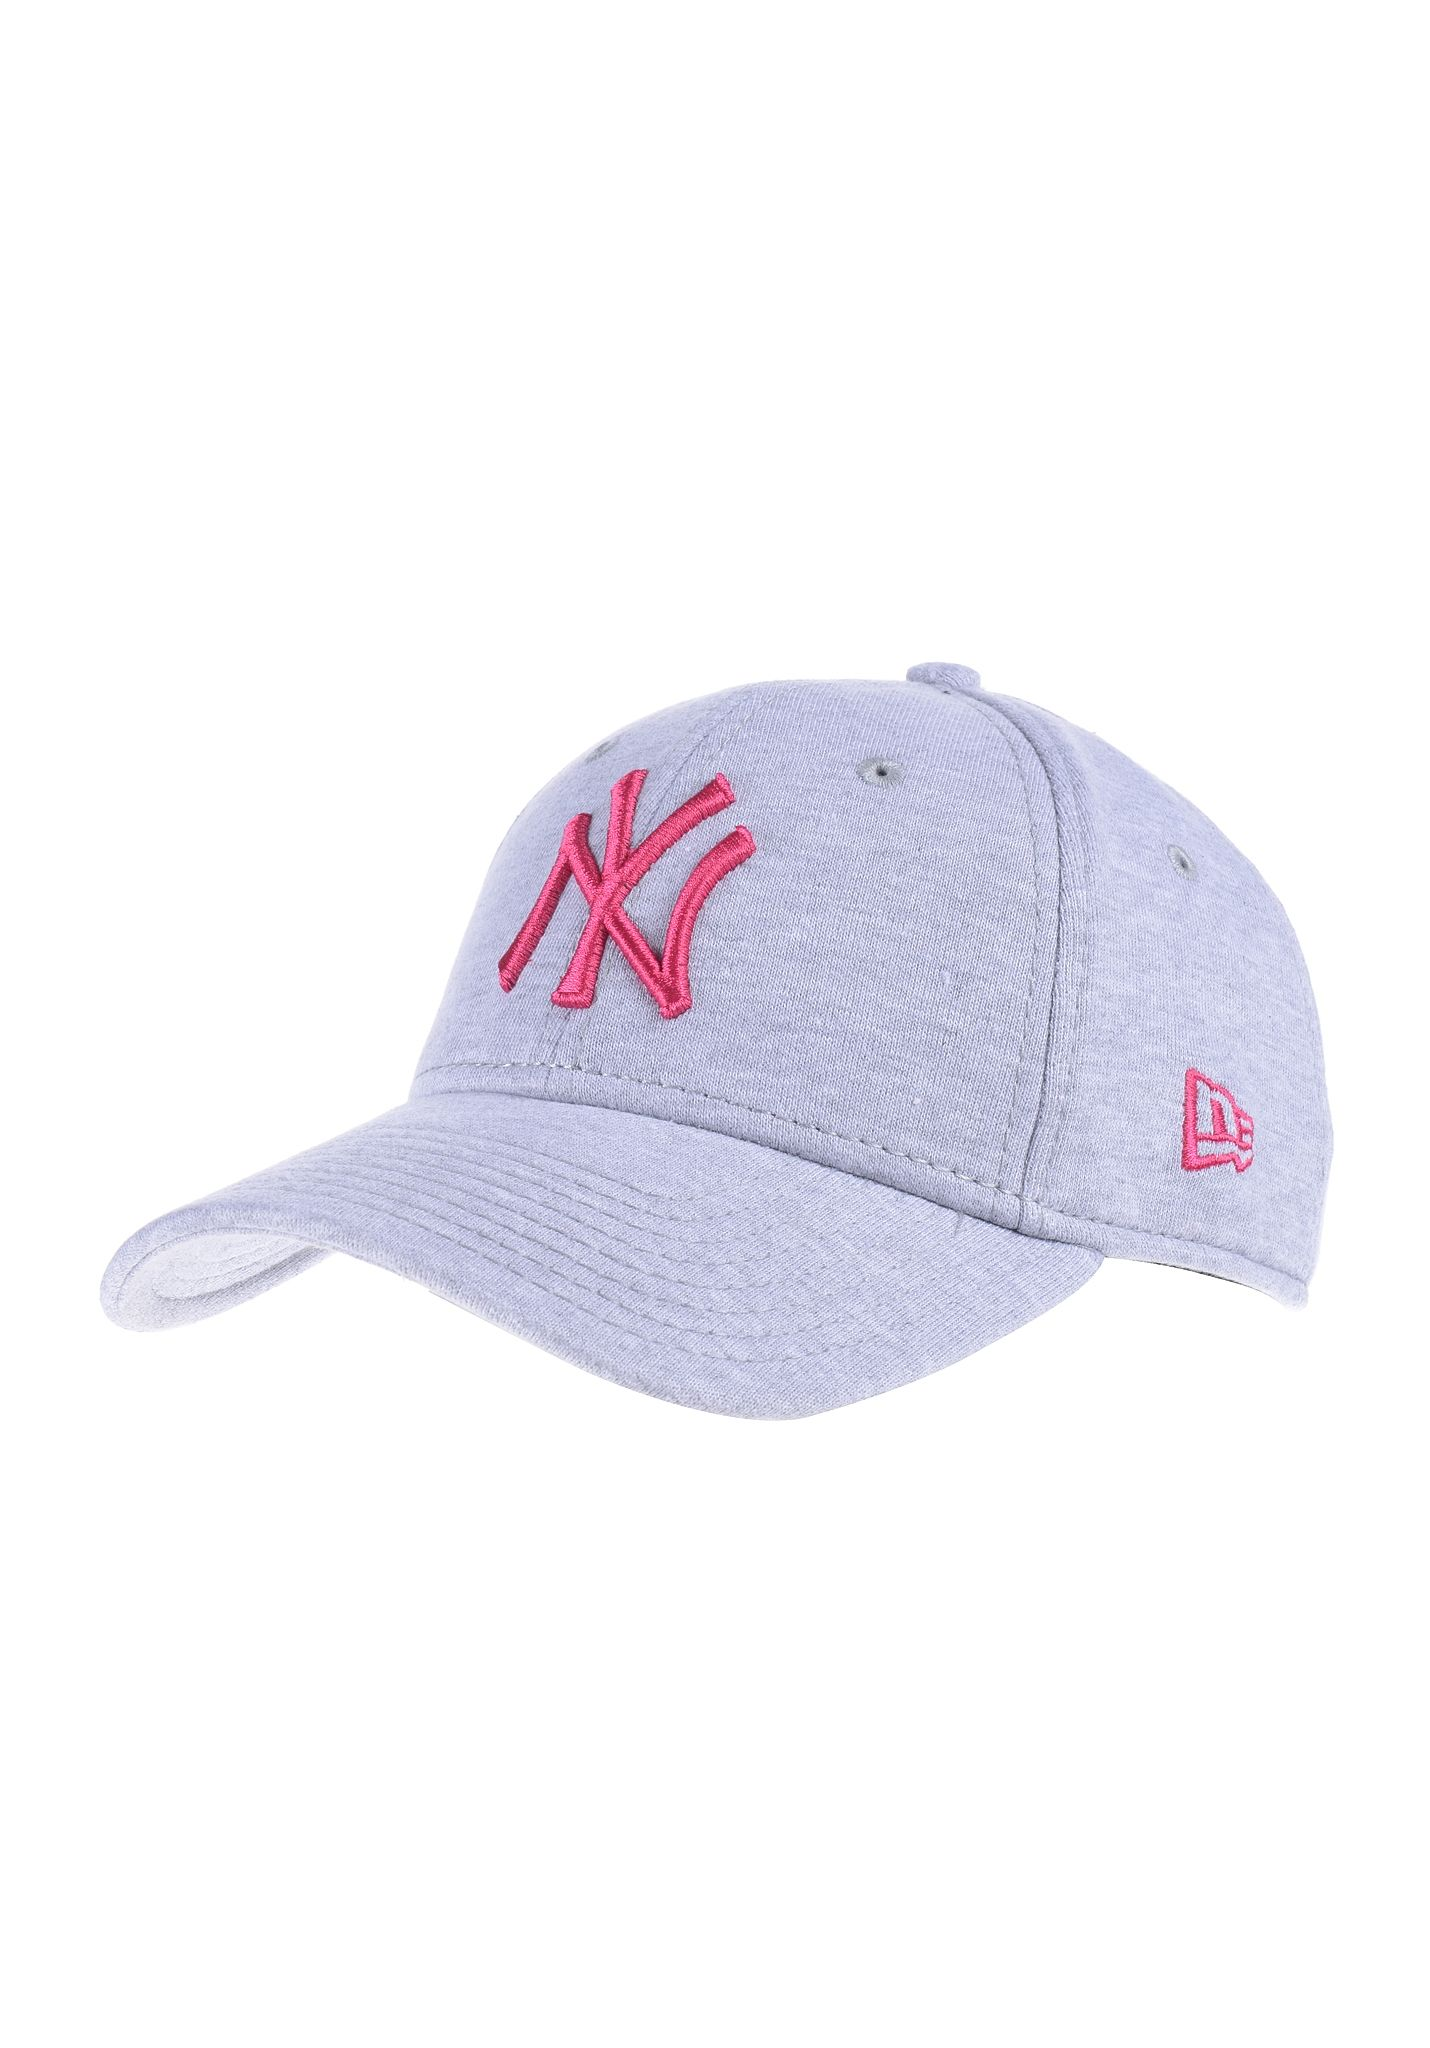 New Era Cap 940 Ny Yankees 5c73cbe4f4e